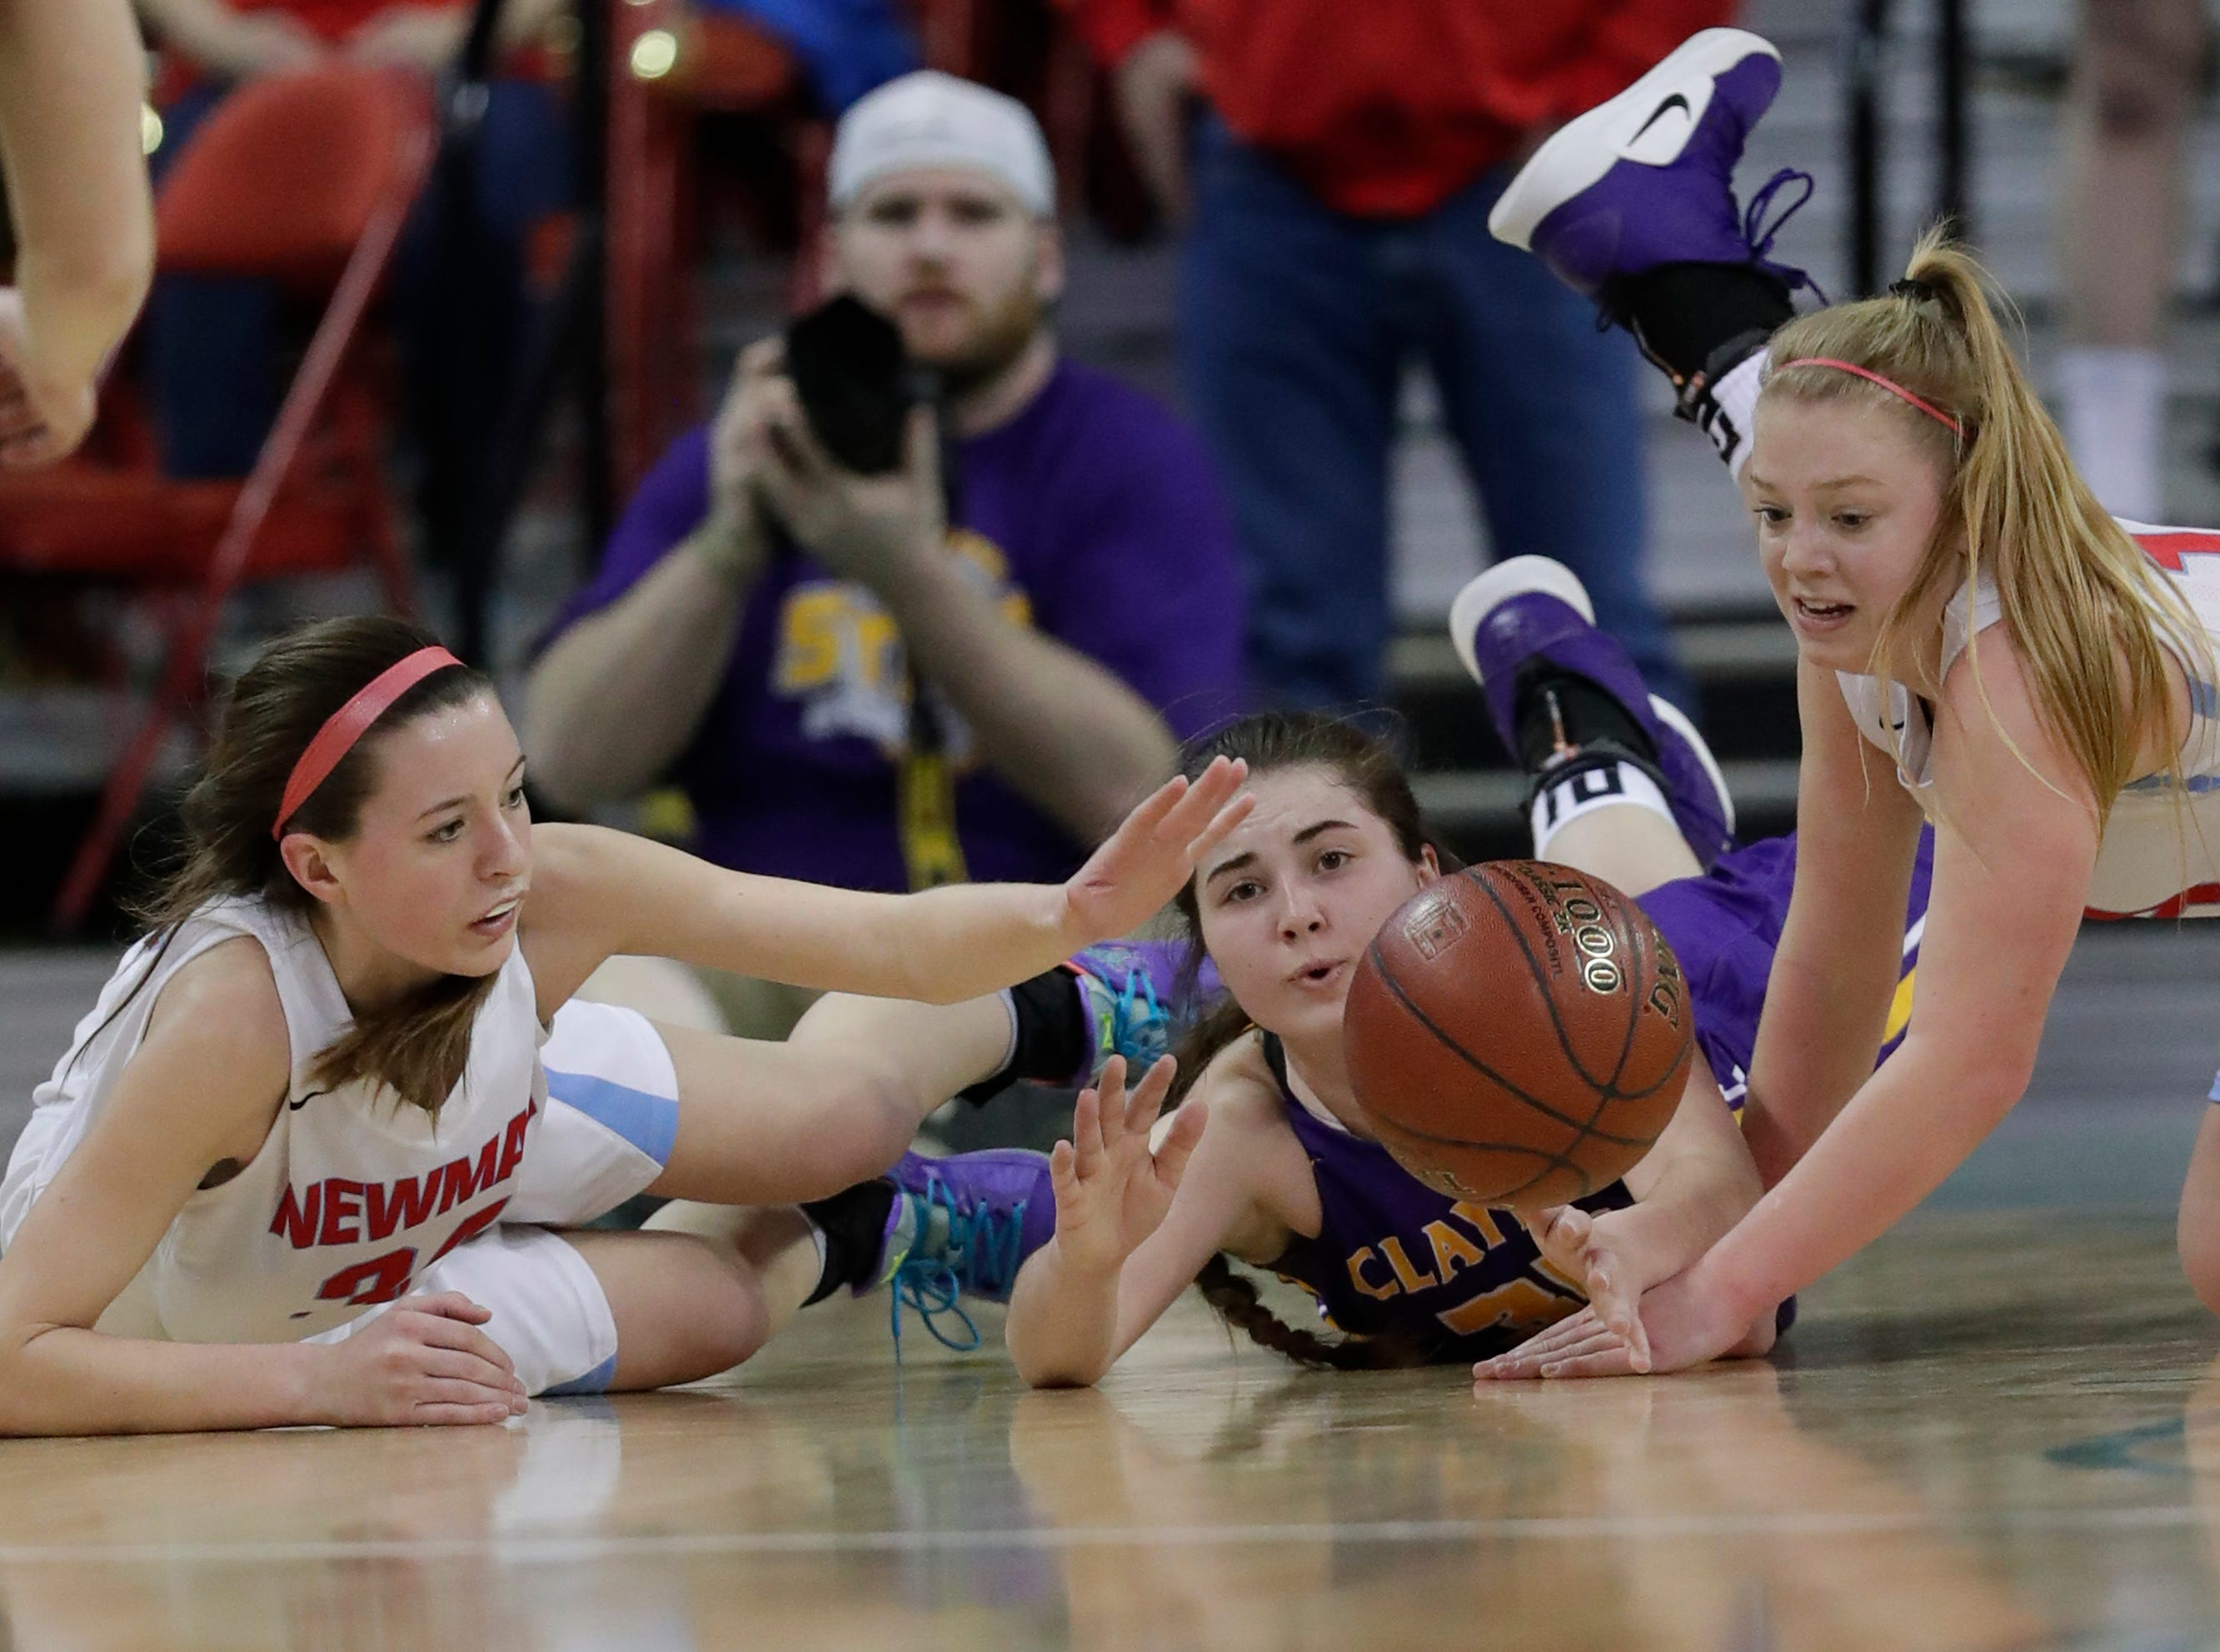 Wausau Newman Catholic's Julia Seidel (34) and  Mackenzie Krach (12) battle for a loose ball against Clayton's Kennedy Patrick (35)during their Division 5 semifinal game at the WIAA girls state basketball tournament Friday, March 8, 2019, at the Resch Center in Ashwaubenon, Wis. Dan Powers/USA TODAY NETWORK-Wisconsin